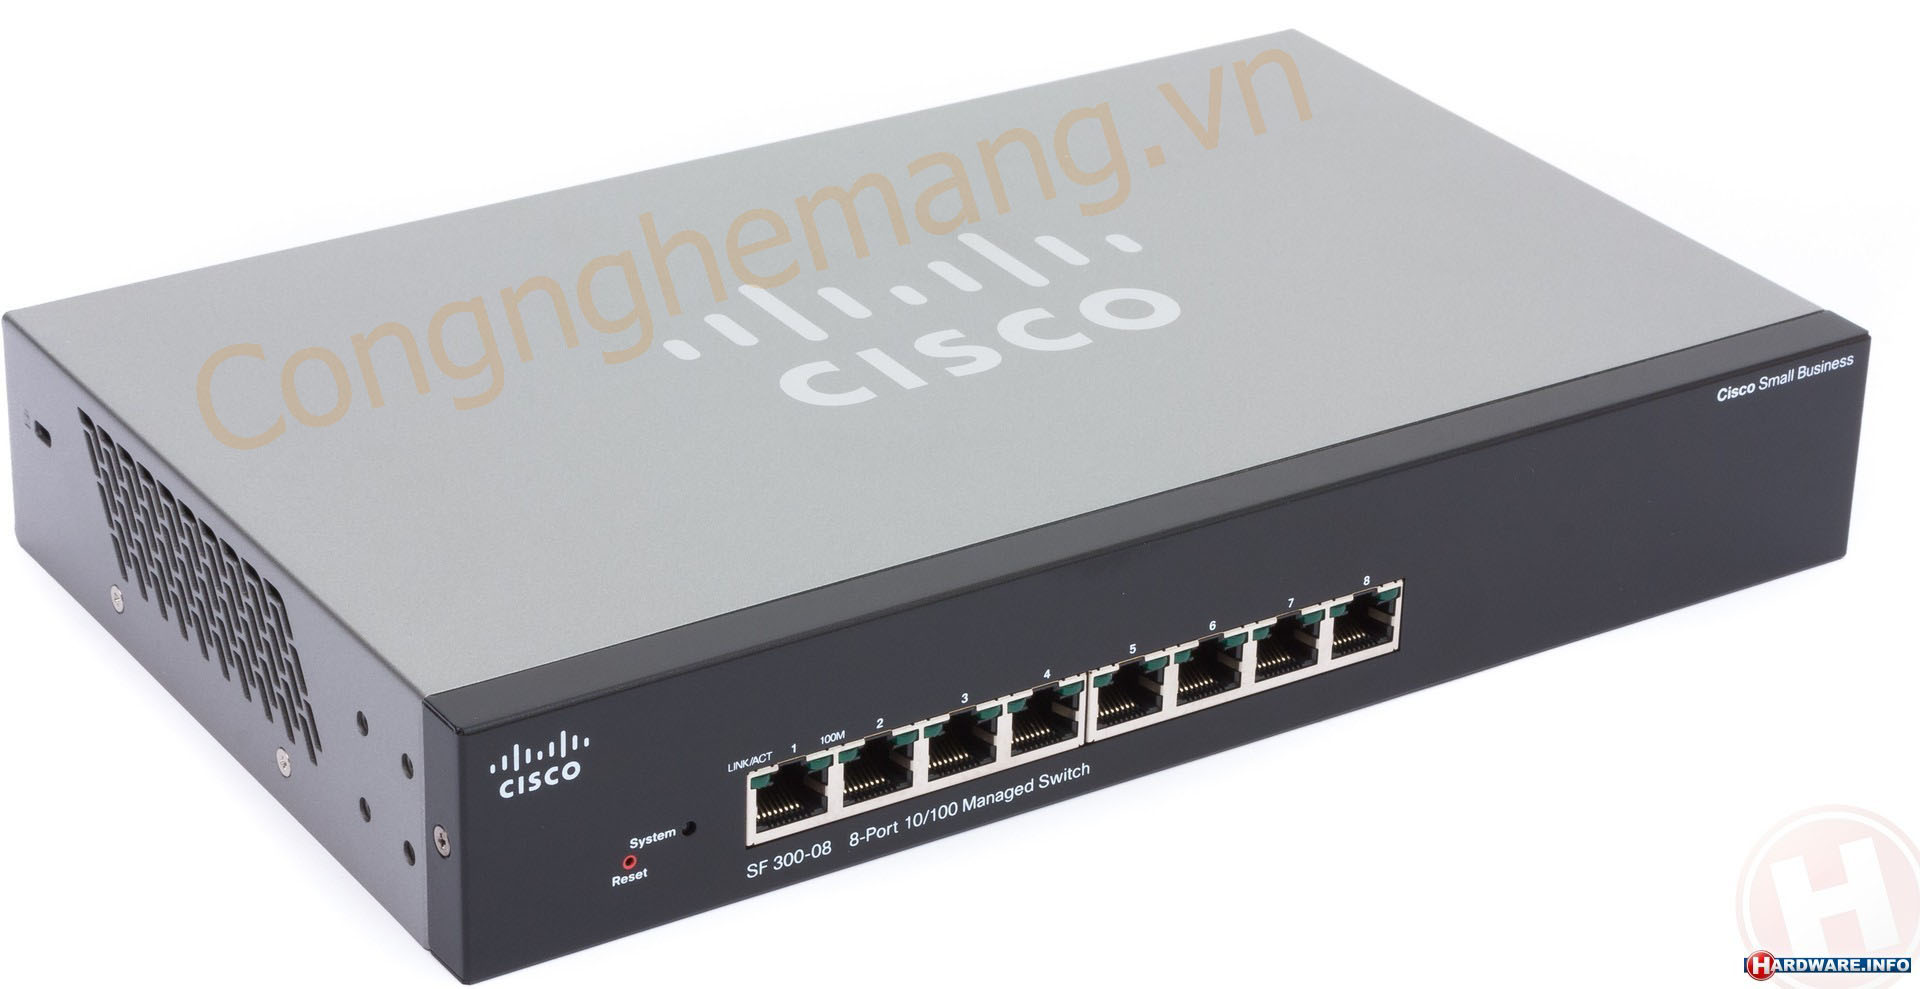 Bán phân phối Switch Cisco small SRW208-K9-EU (SF300-08)